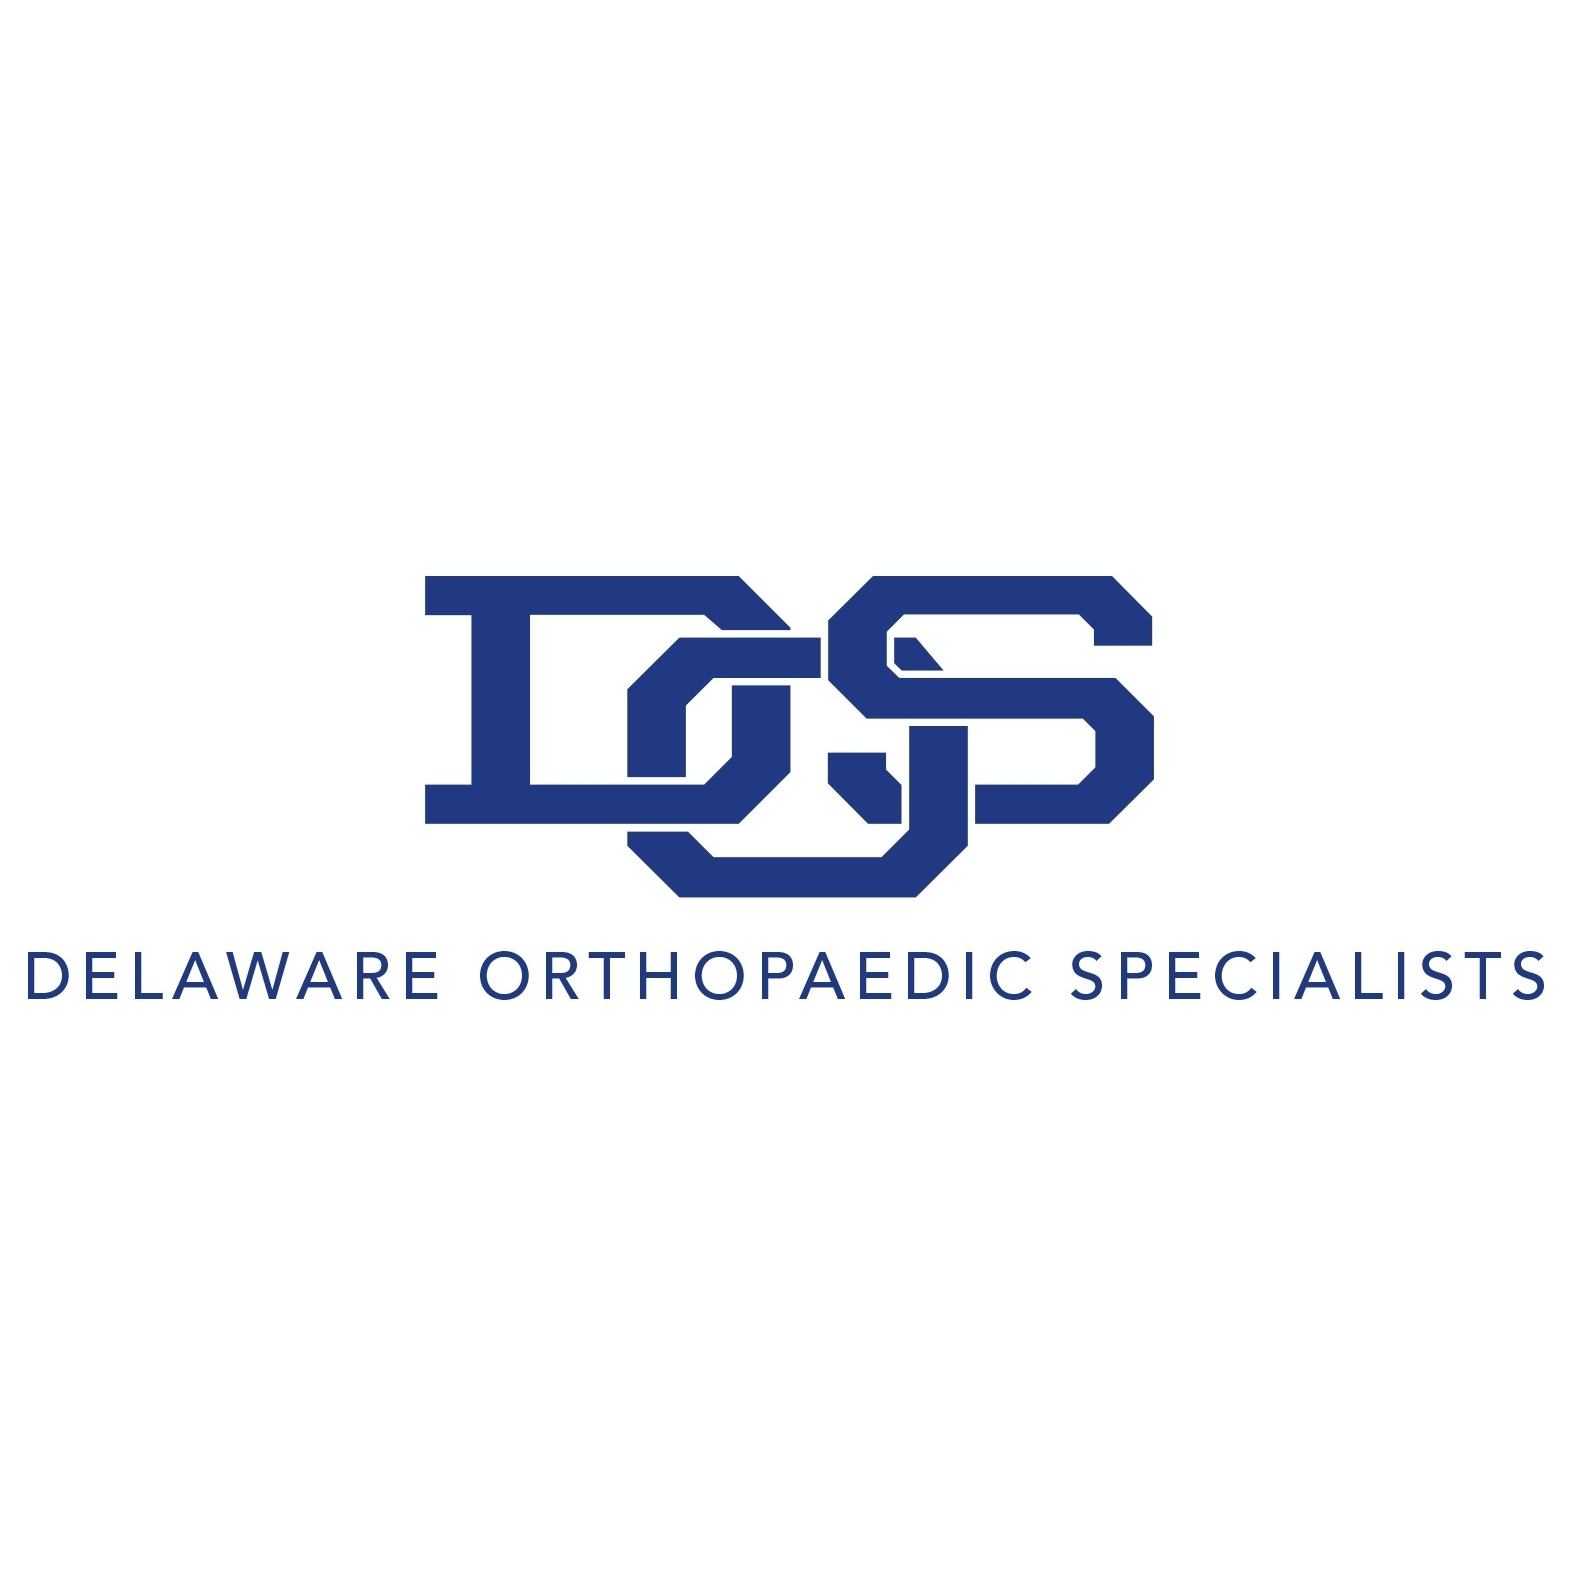 Delaware Orthopaedic Specialists In Newark De Whitepages